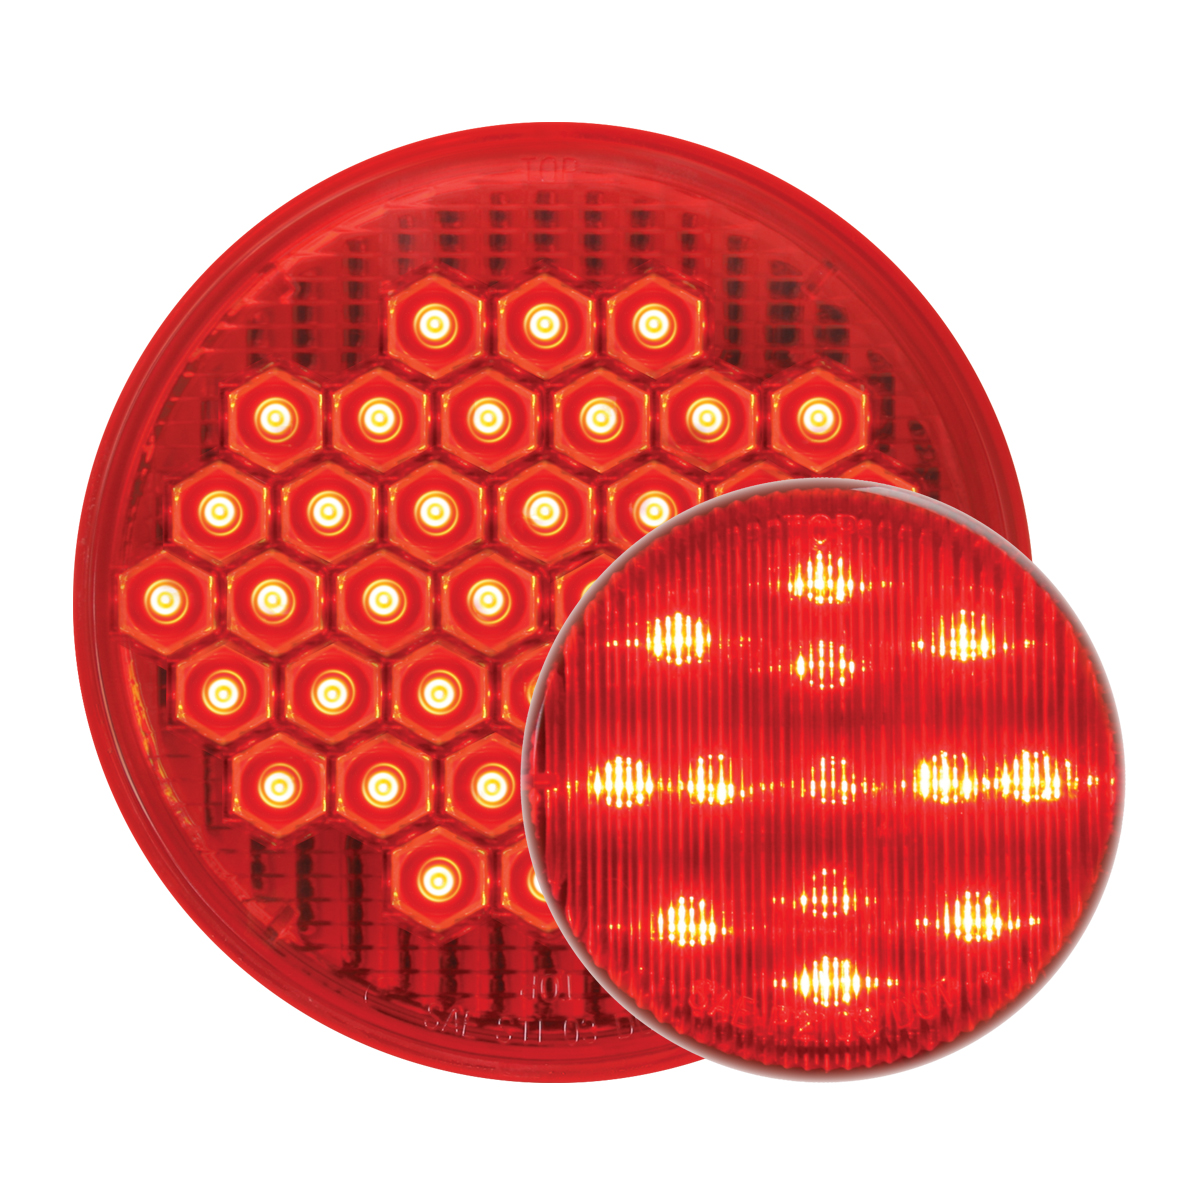 #87700/#79281 High Count LED Flat - Red/Red